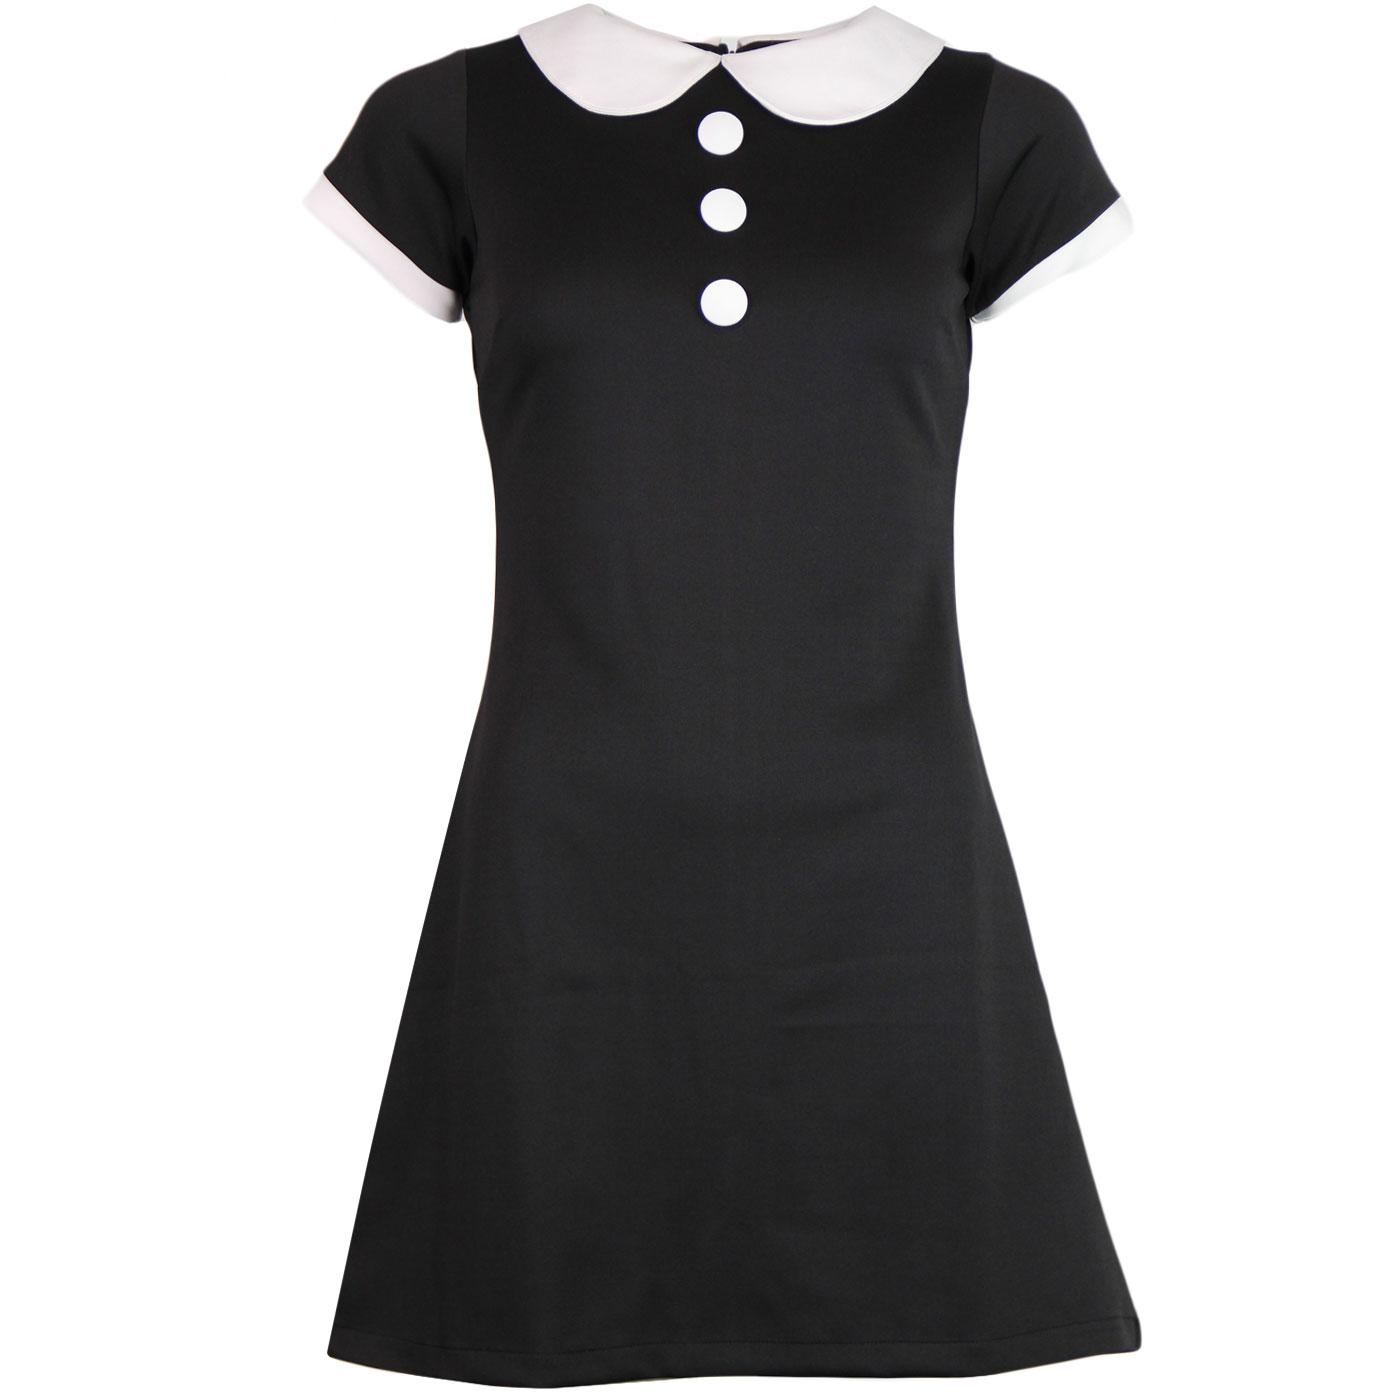 Dollierocker Jersey MADCAP ENGLAND 60s Mod Dress